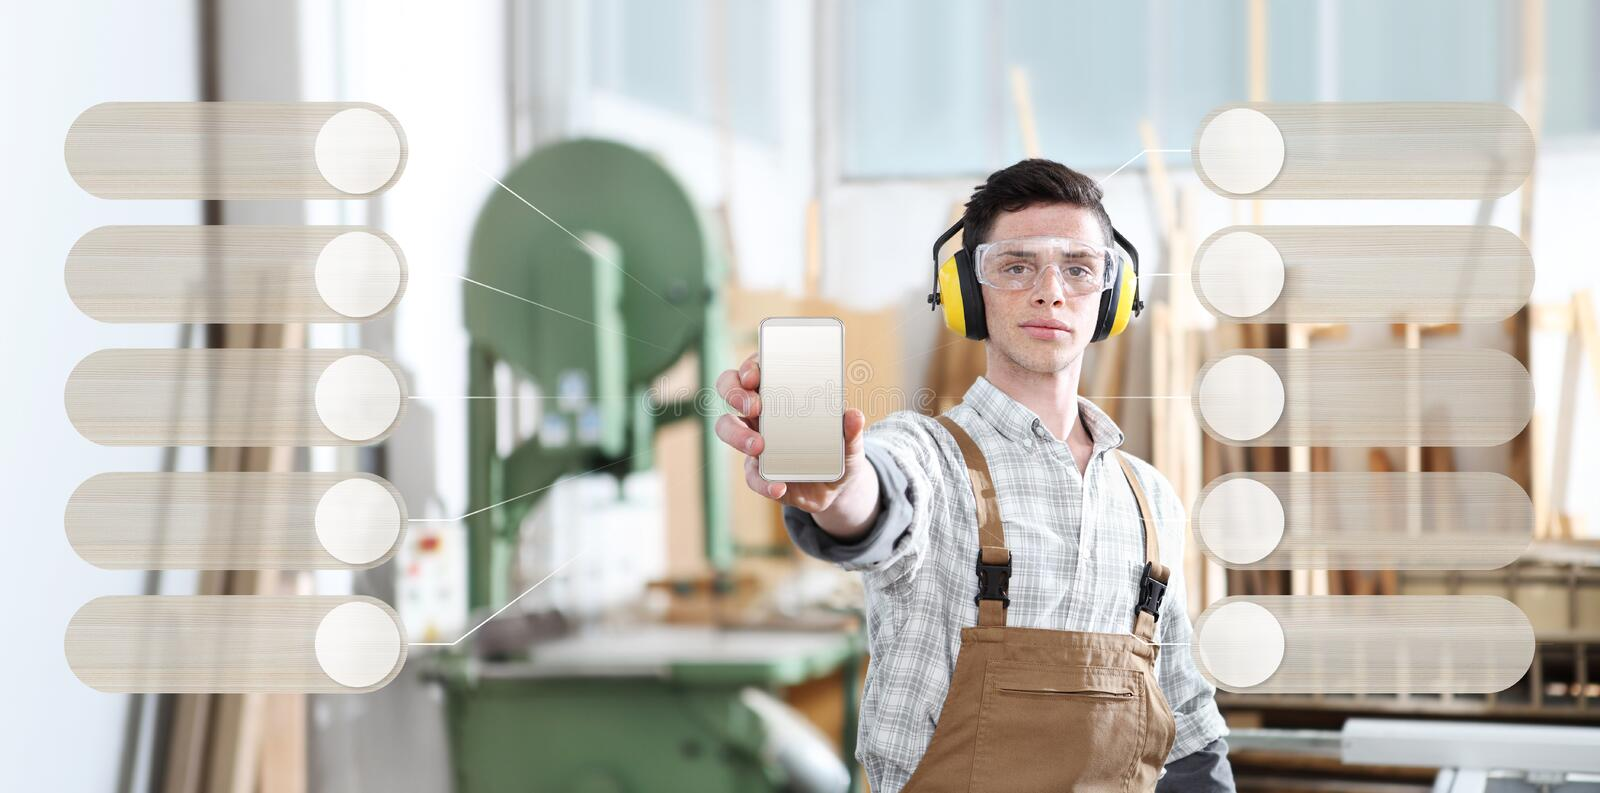 Carpenter man show the mobile phone with infographic of wooden empty symbol icons on carpentry background. Carpenter man show the mobile phone with infographic royalty free stock photography